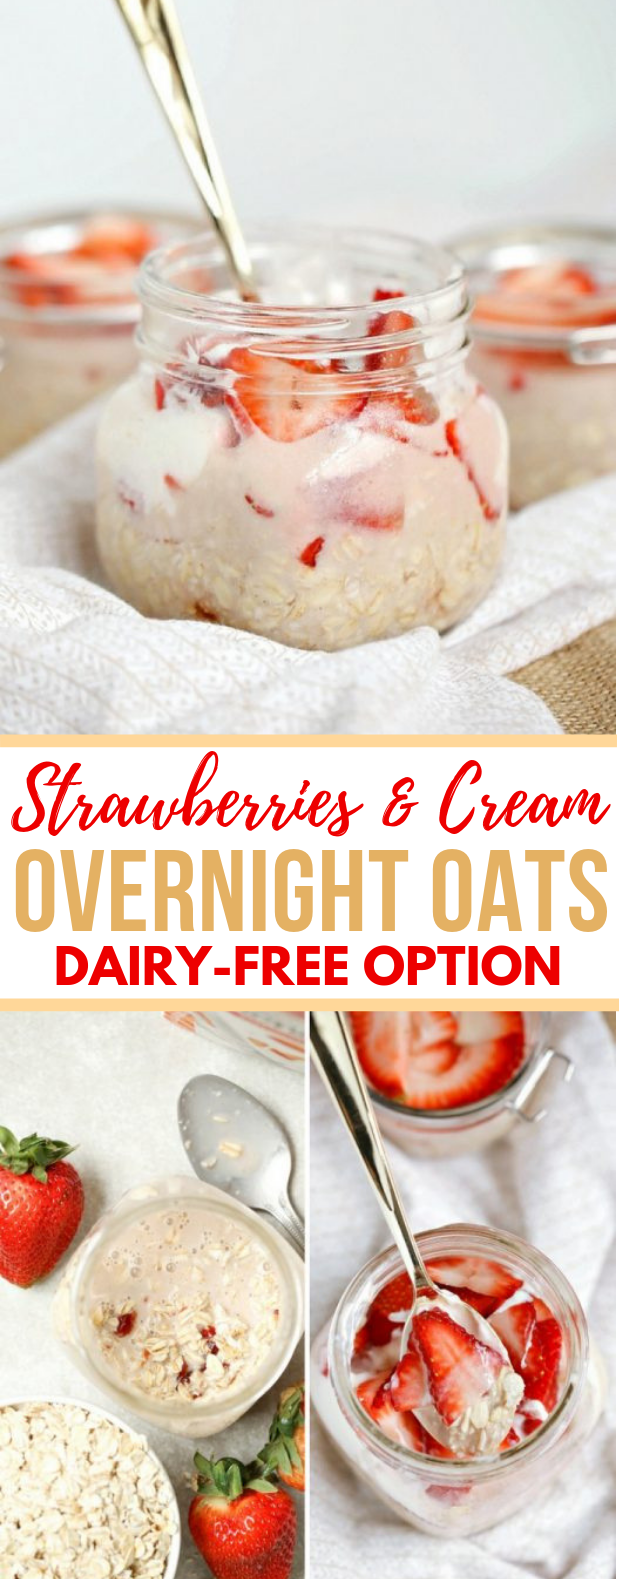 Strawberries and Cream Overnight Oats #healthydiet #breakfast